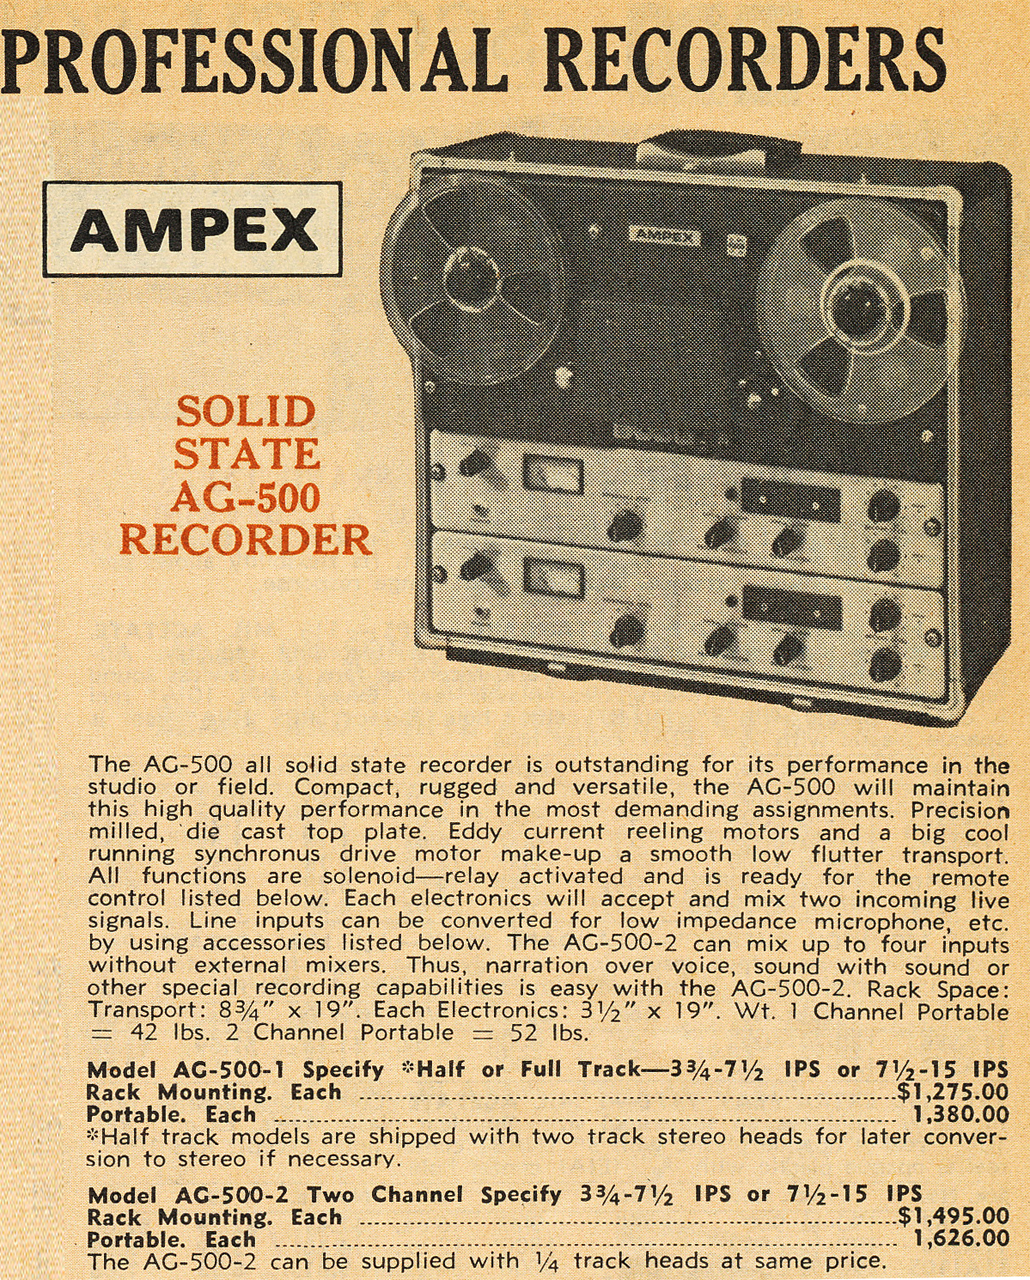 1958 ad for the Ampex AG-500 professional reel tape recorder in the Reel2ReelTexas.com vintage recording collection Museum's vintage collection